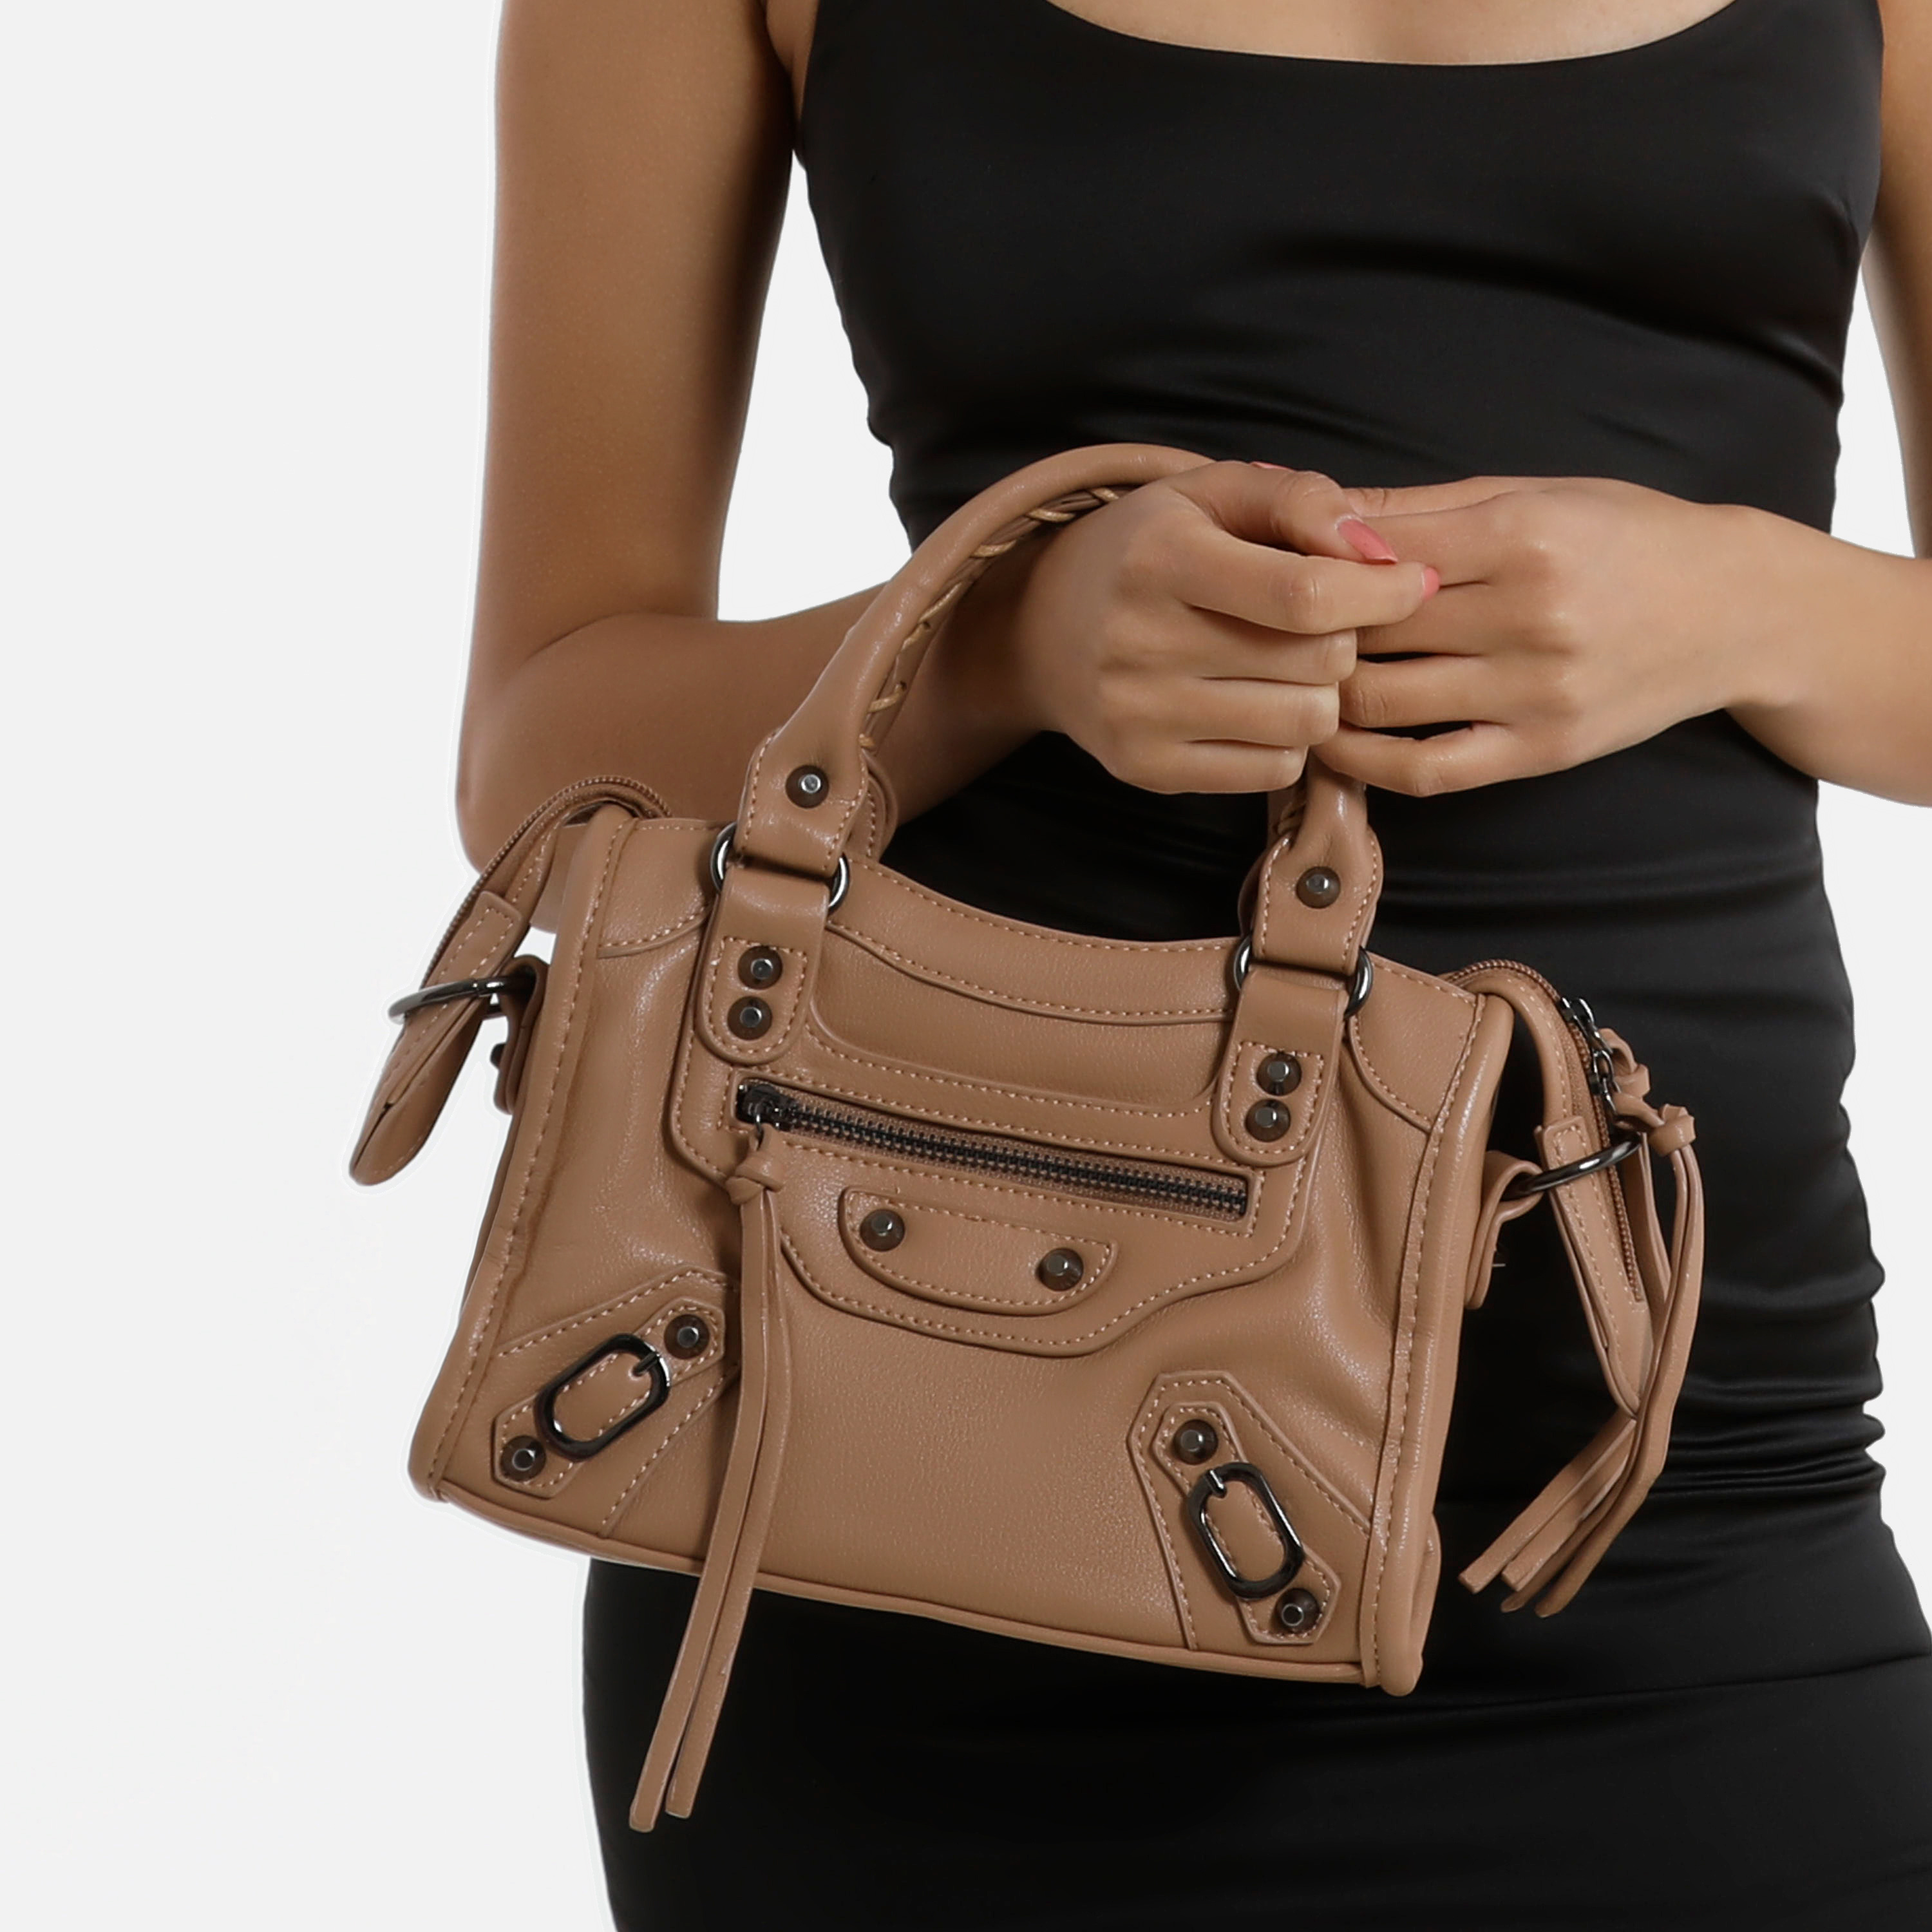 Buckle Detail Mini City Bag In Nude Faux Leather